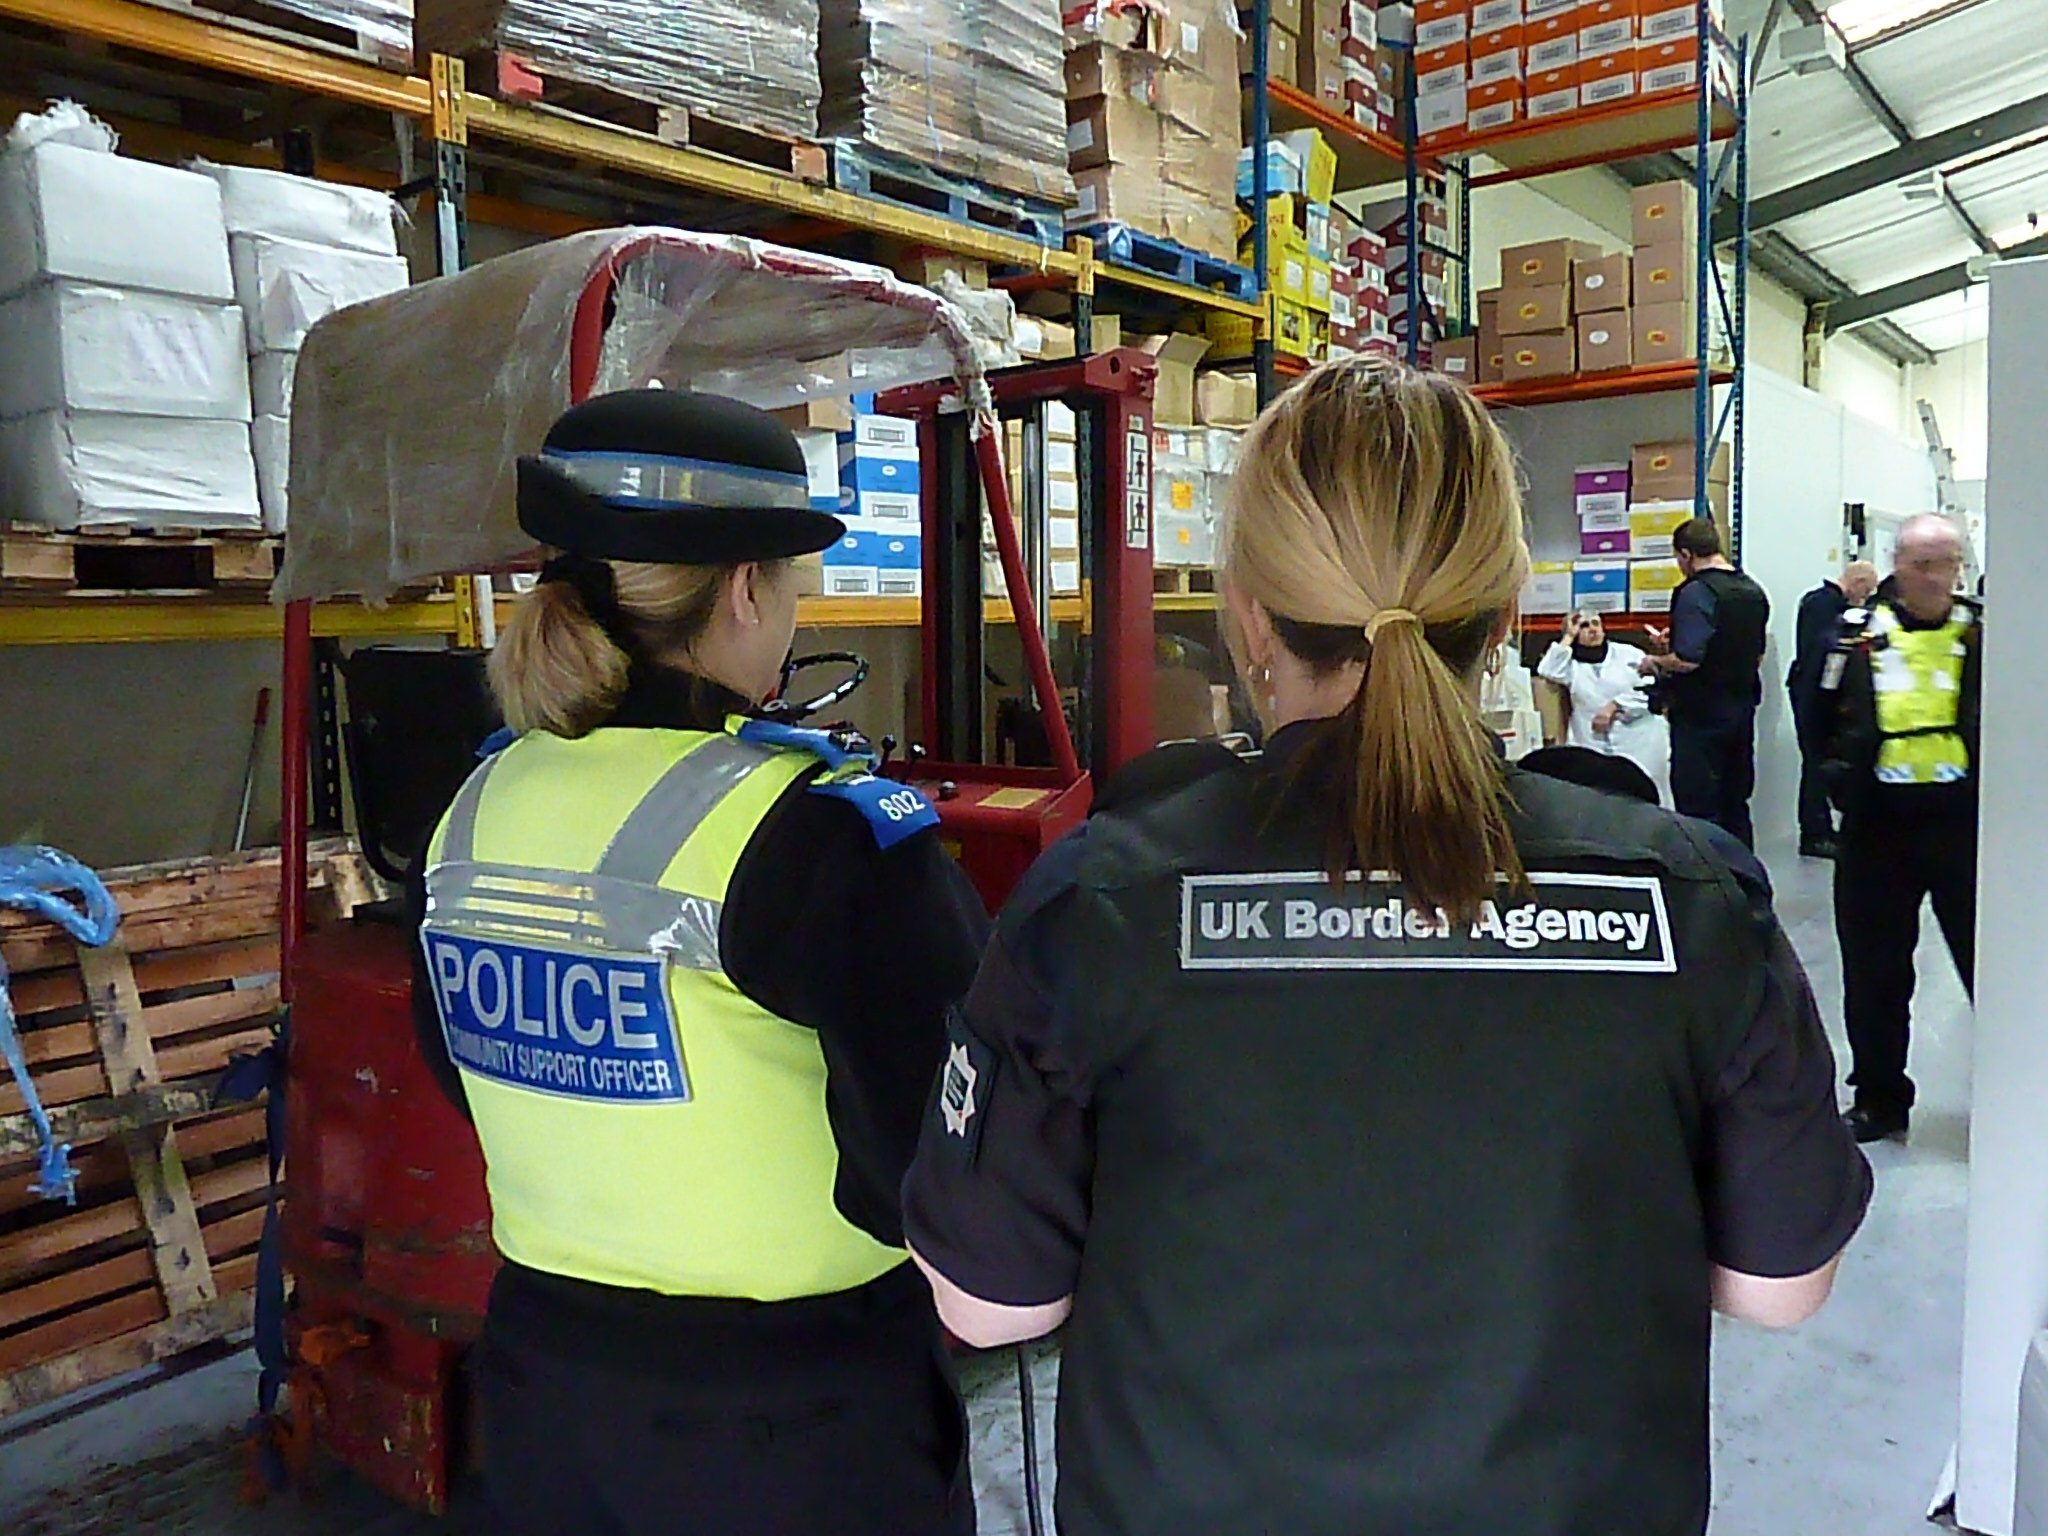 UK Border Agency and police conducting a raid